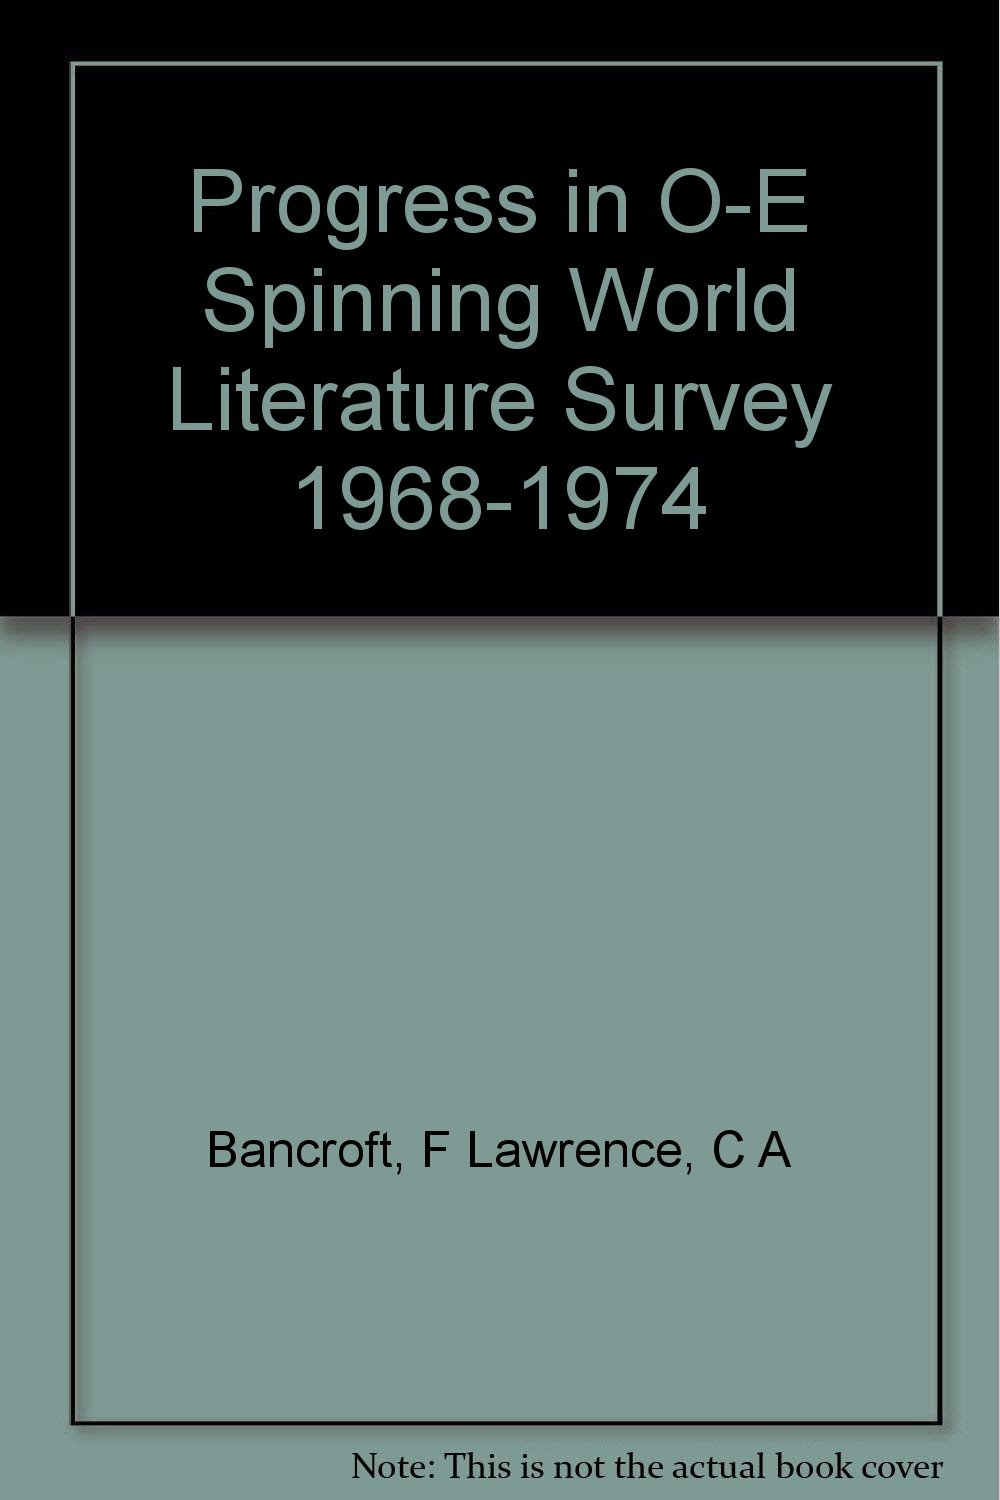 Progress in O-E Spinning World Literature Survey 1968-1974